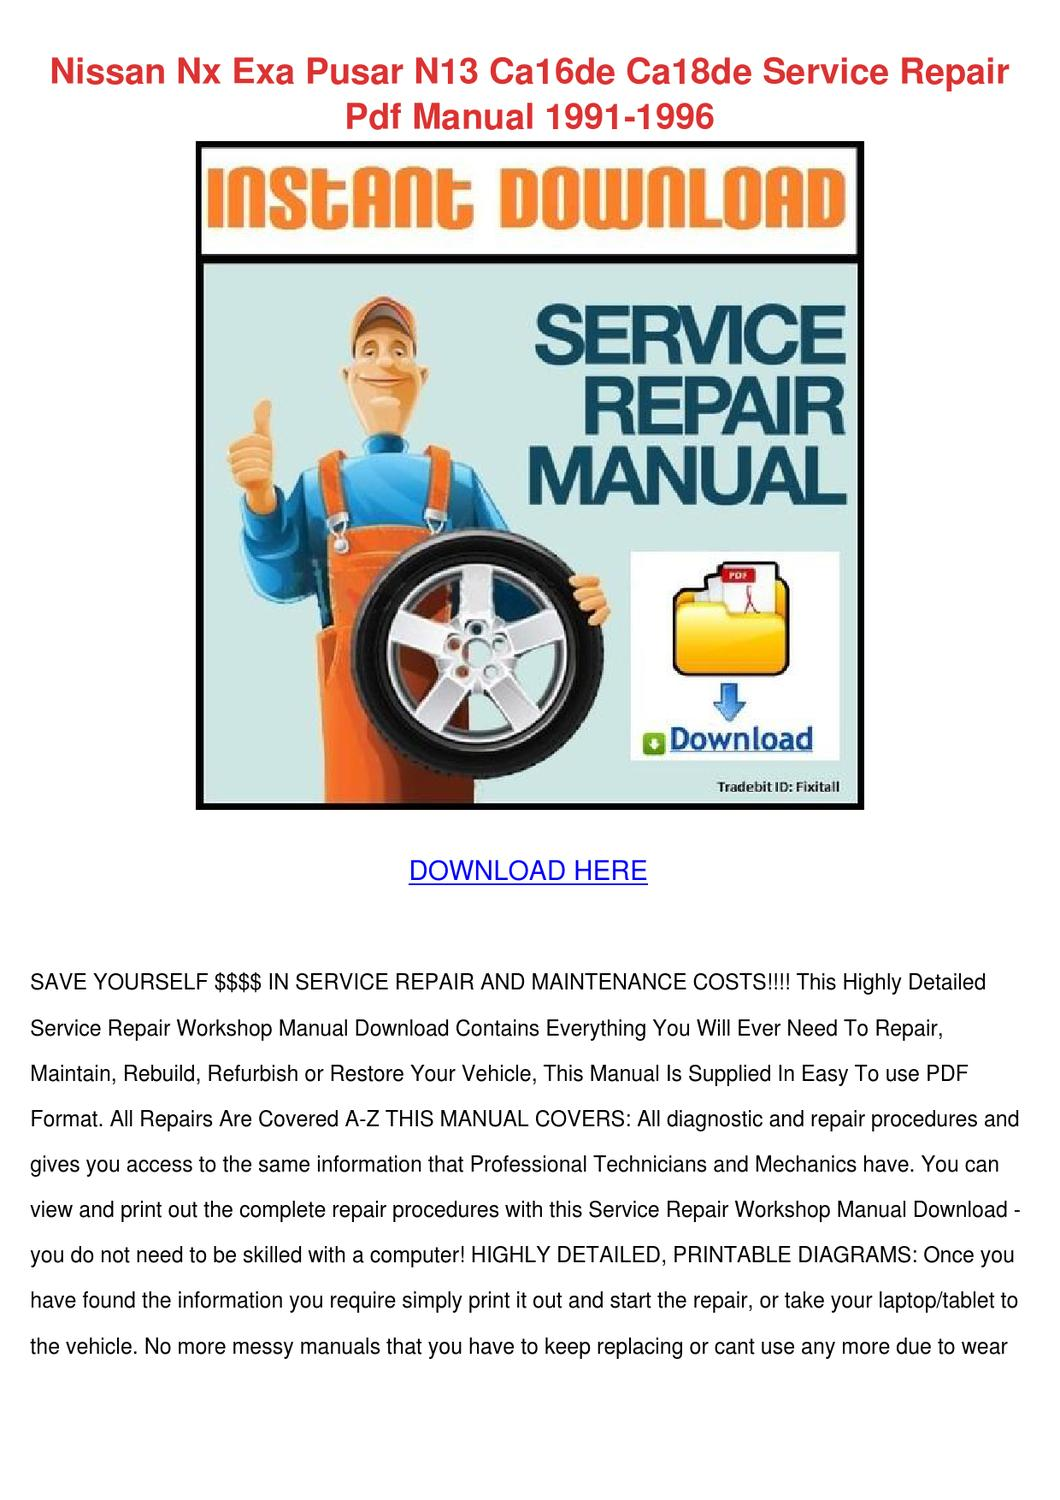 Miraculous Nissan Exa Wiring Diagram Wiring Library Wiring Cloud Hisonuggs Outletorg